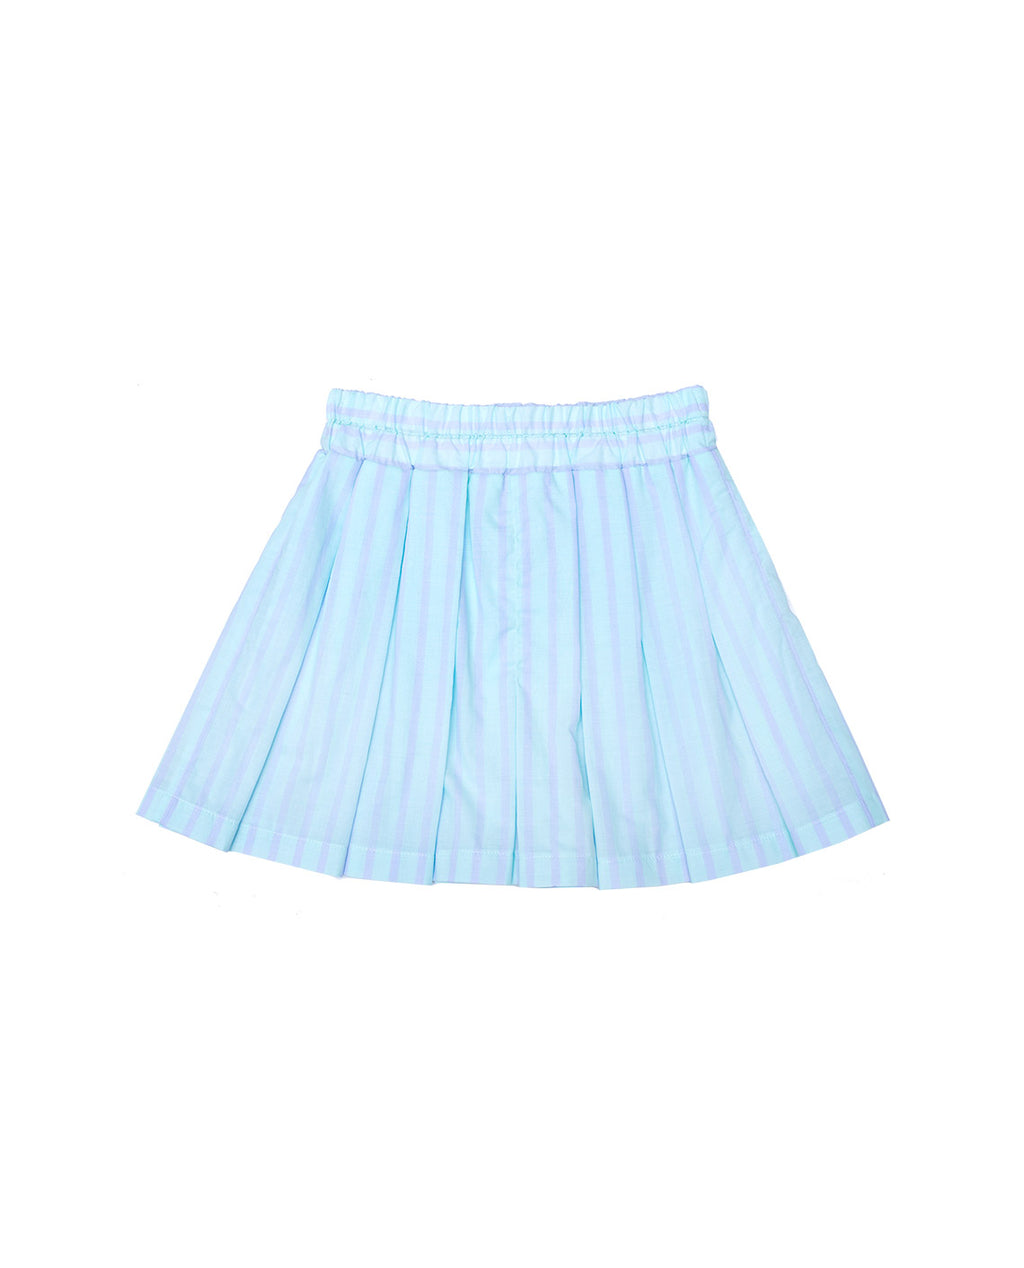 Cotton Shorts - Clover Blue